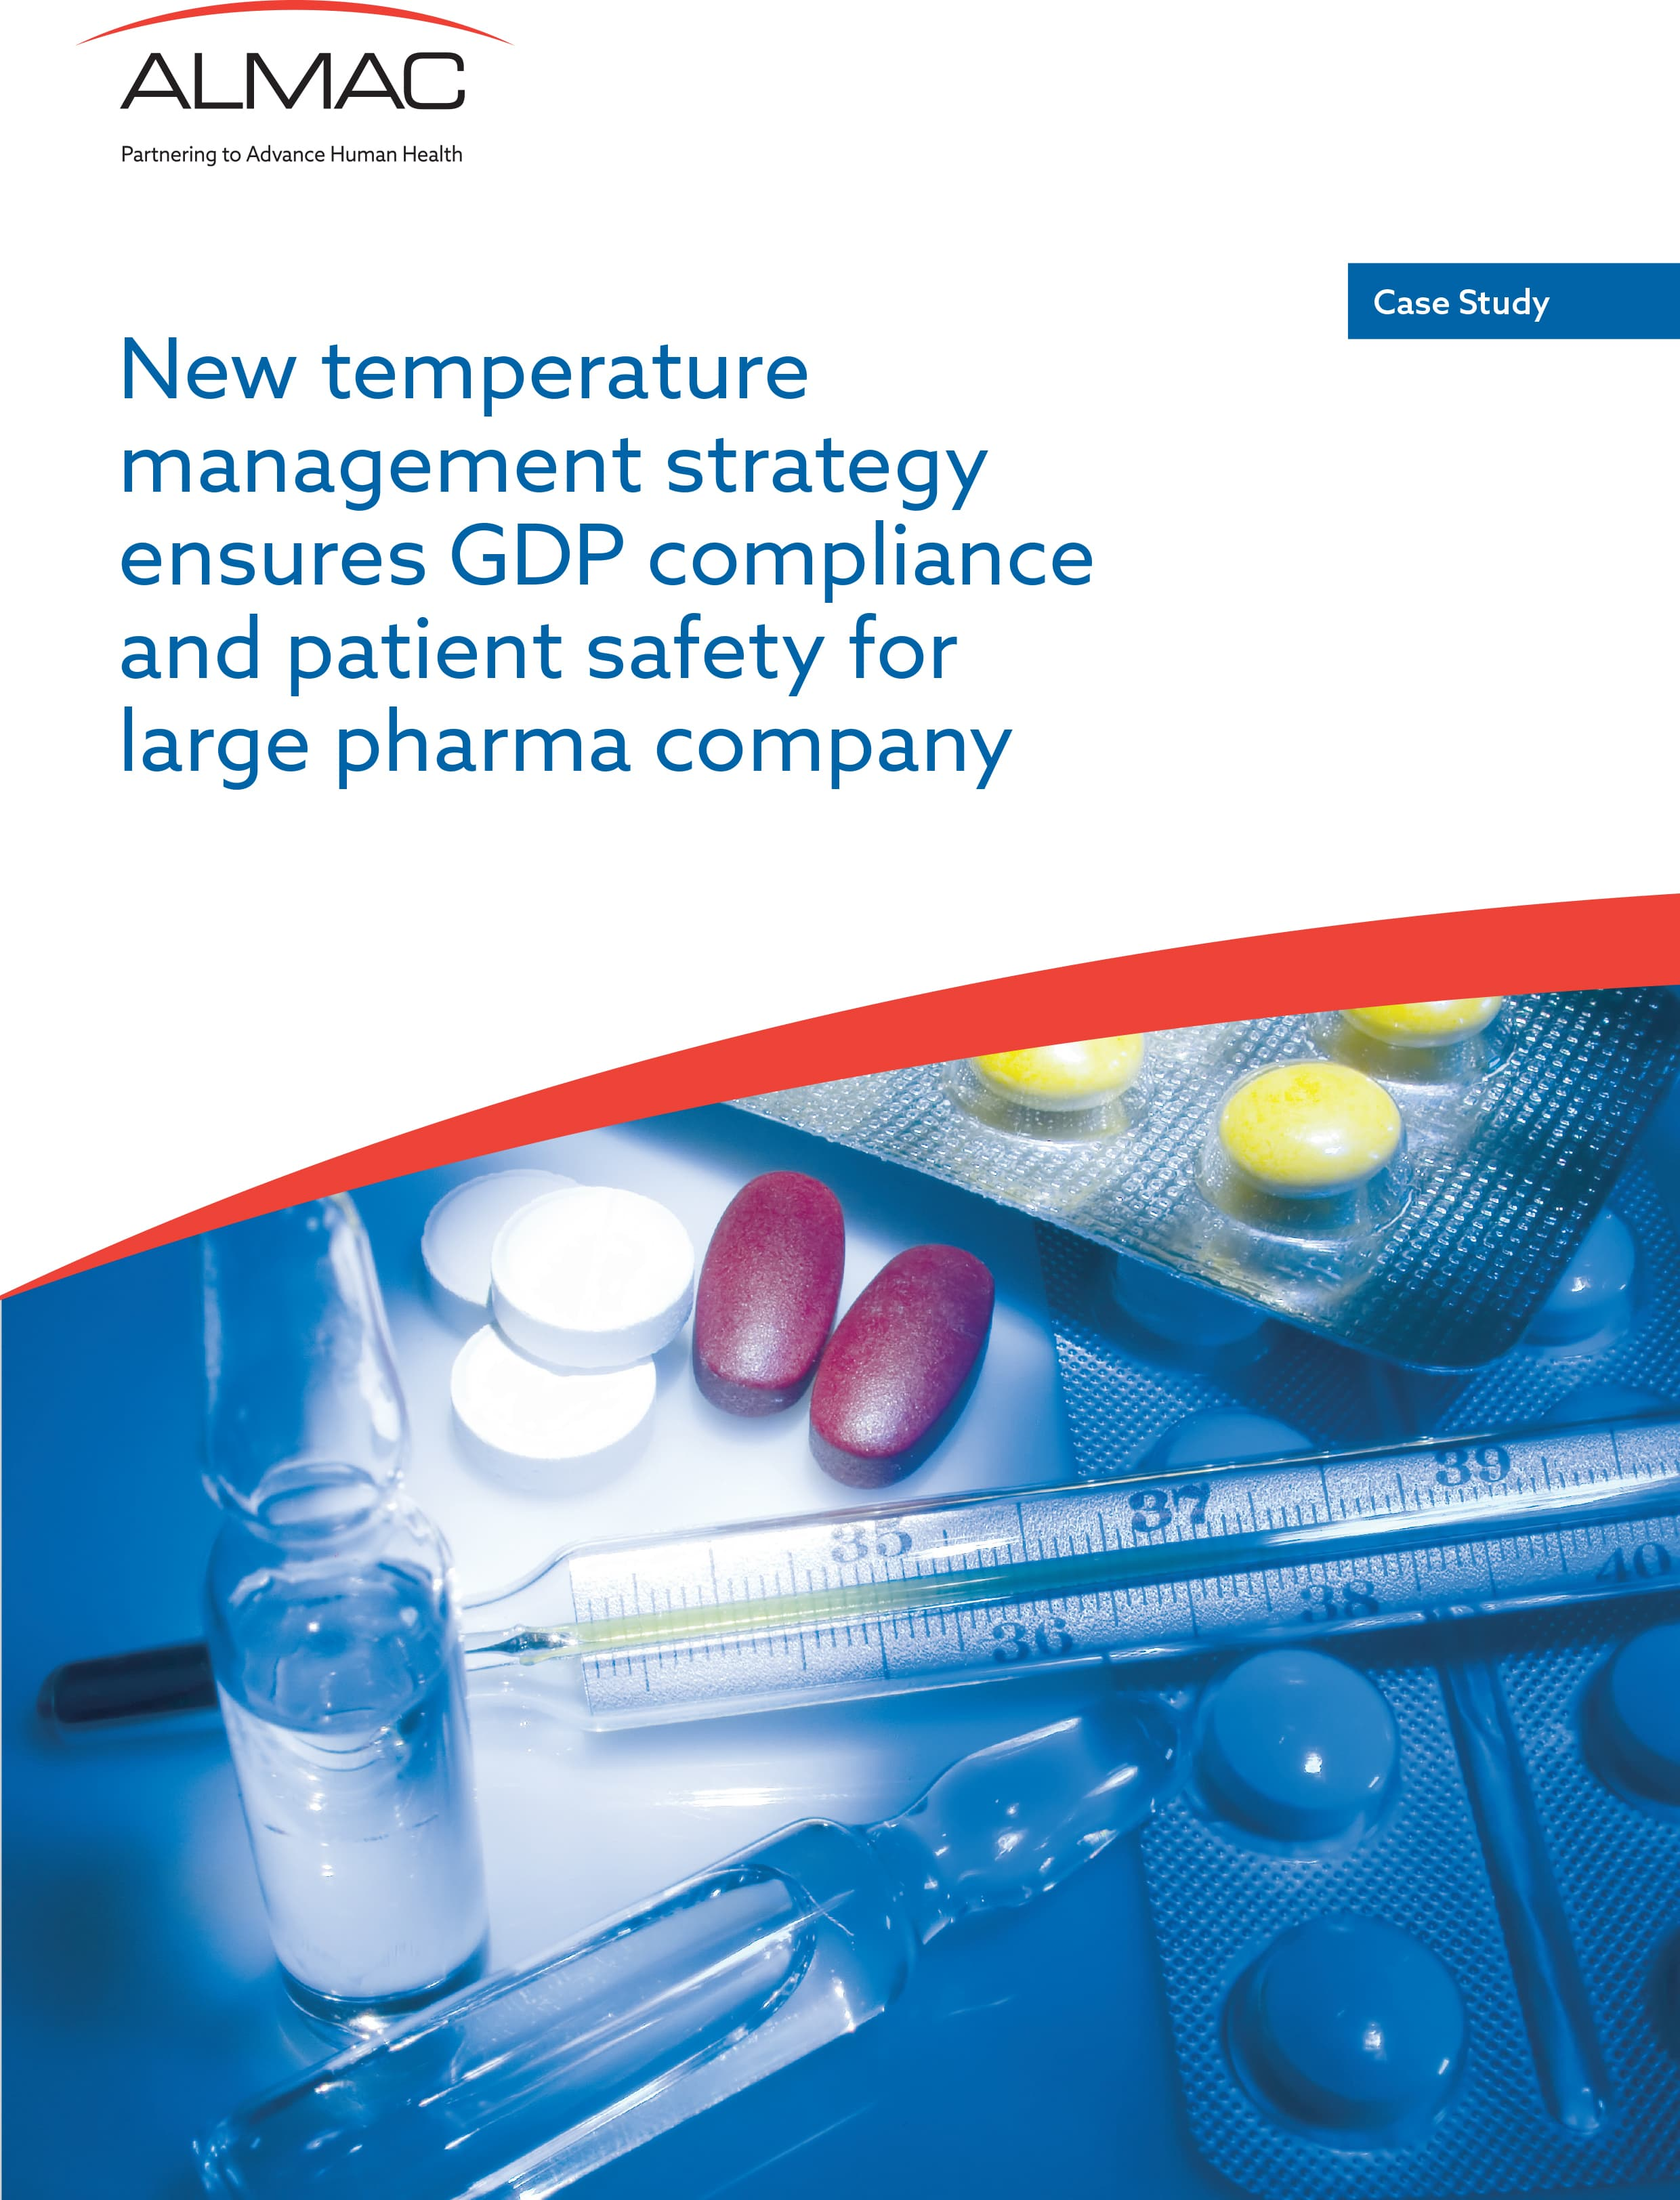 New temperature management strategy ensures GDP compliance and patient safety for large pharma company